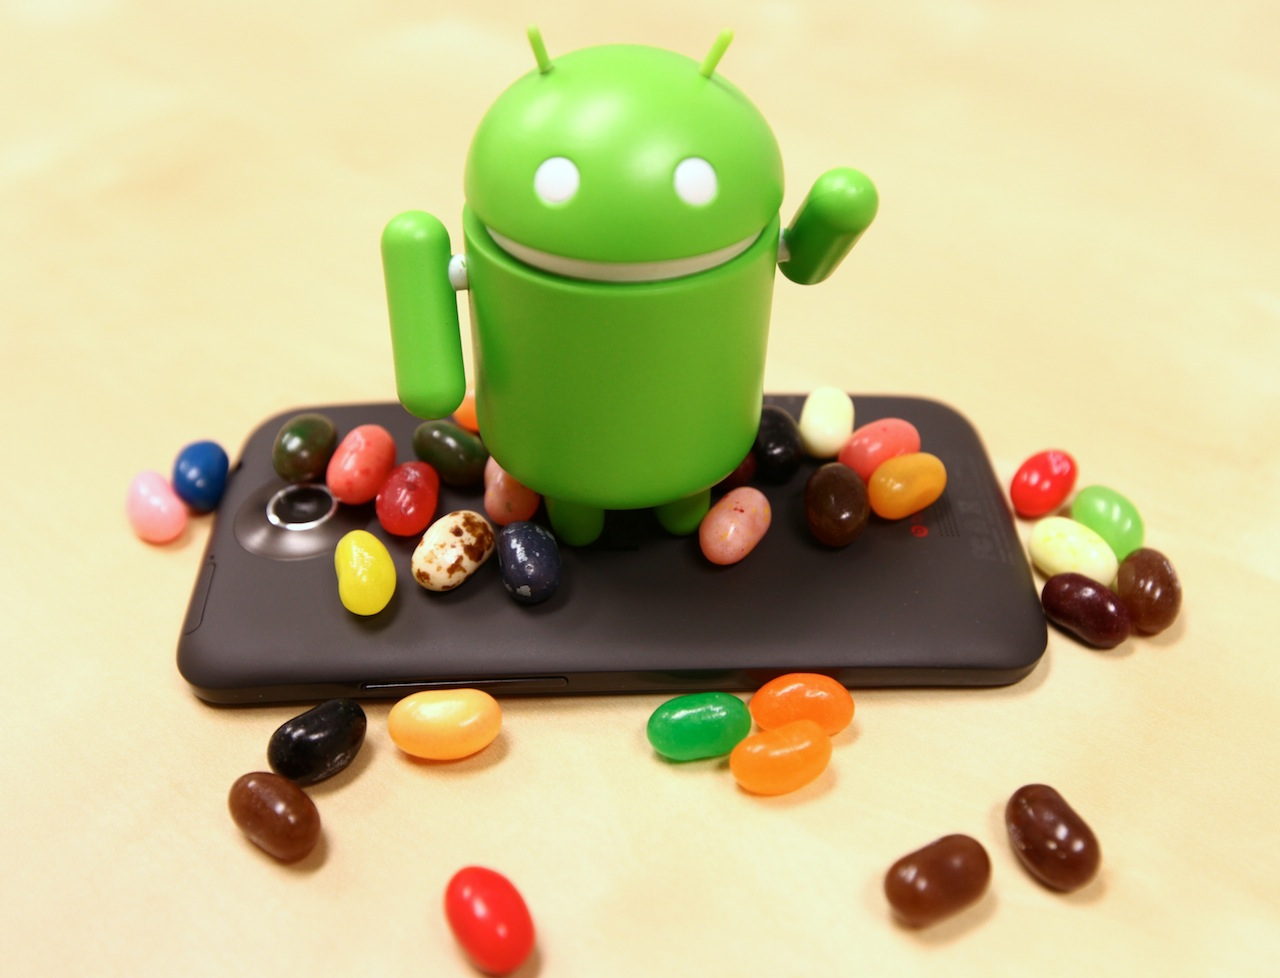 How to update samsung galaxy S3 to jelly bean 4.1